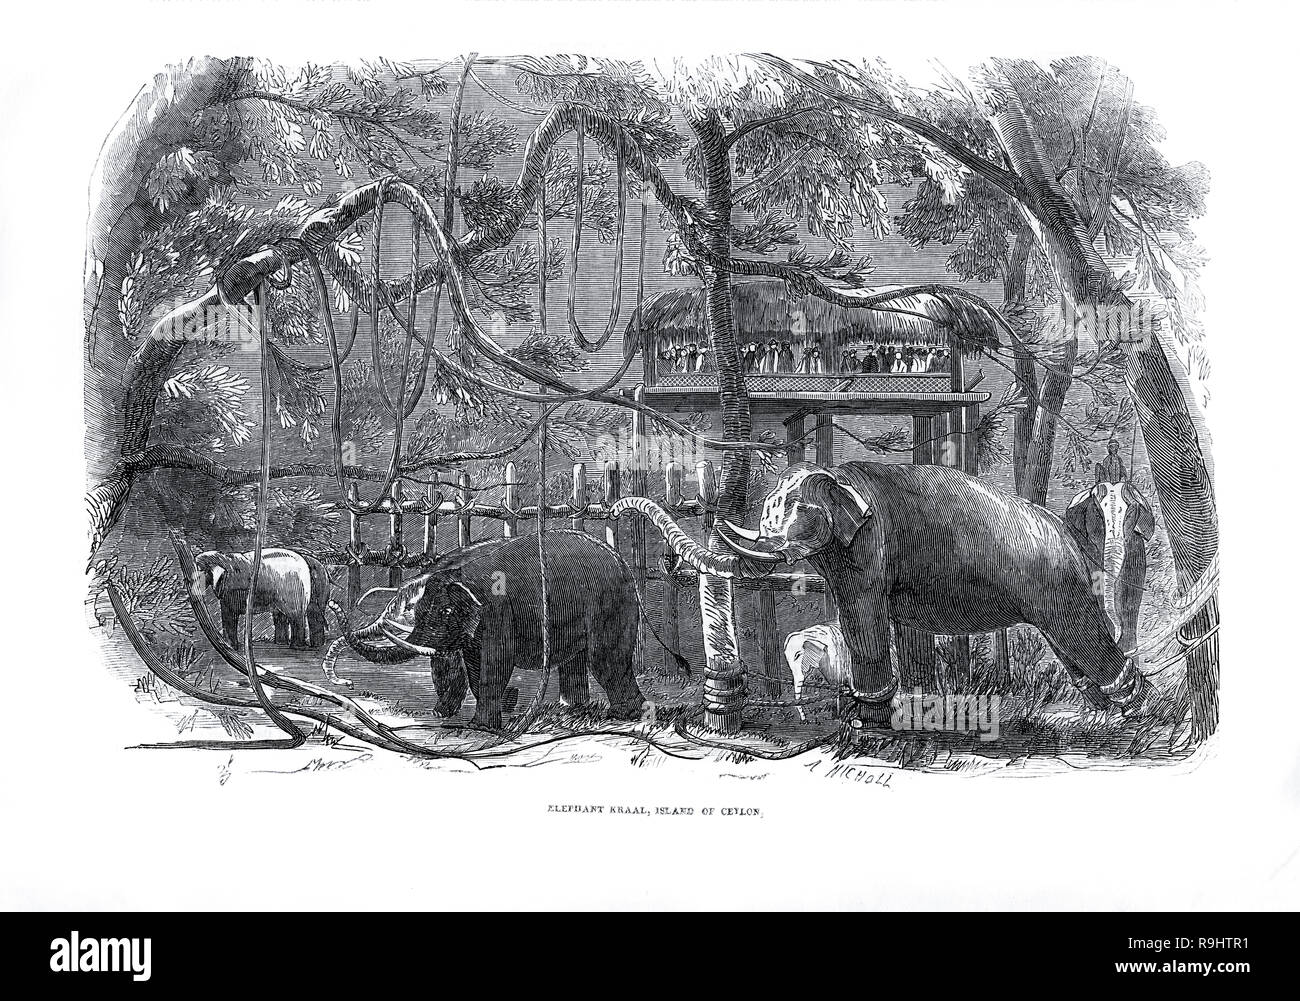 Victorian engraving of an elephant kraal in Ceylon (Sri Lanka) from The Illustrated London News 1851 - Stock Image